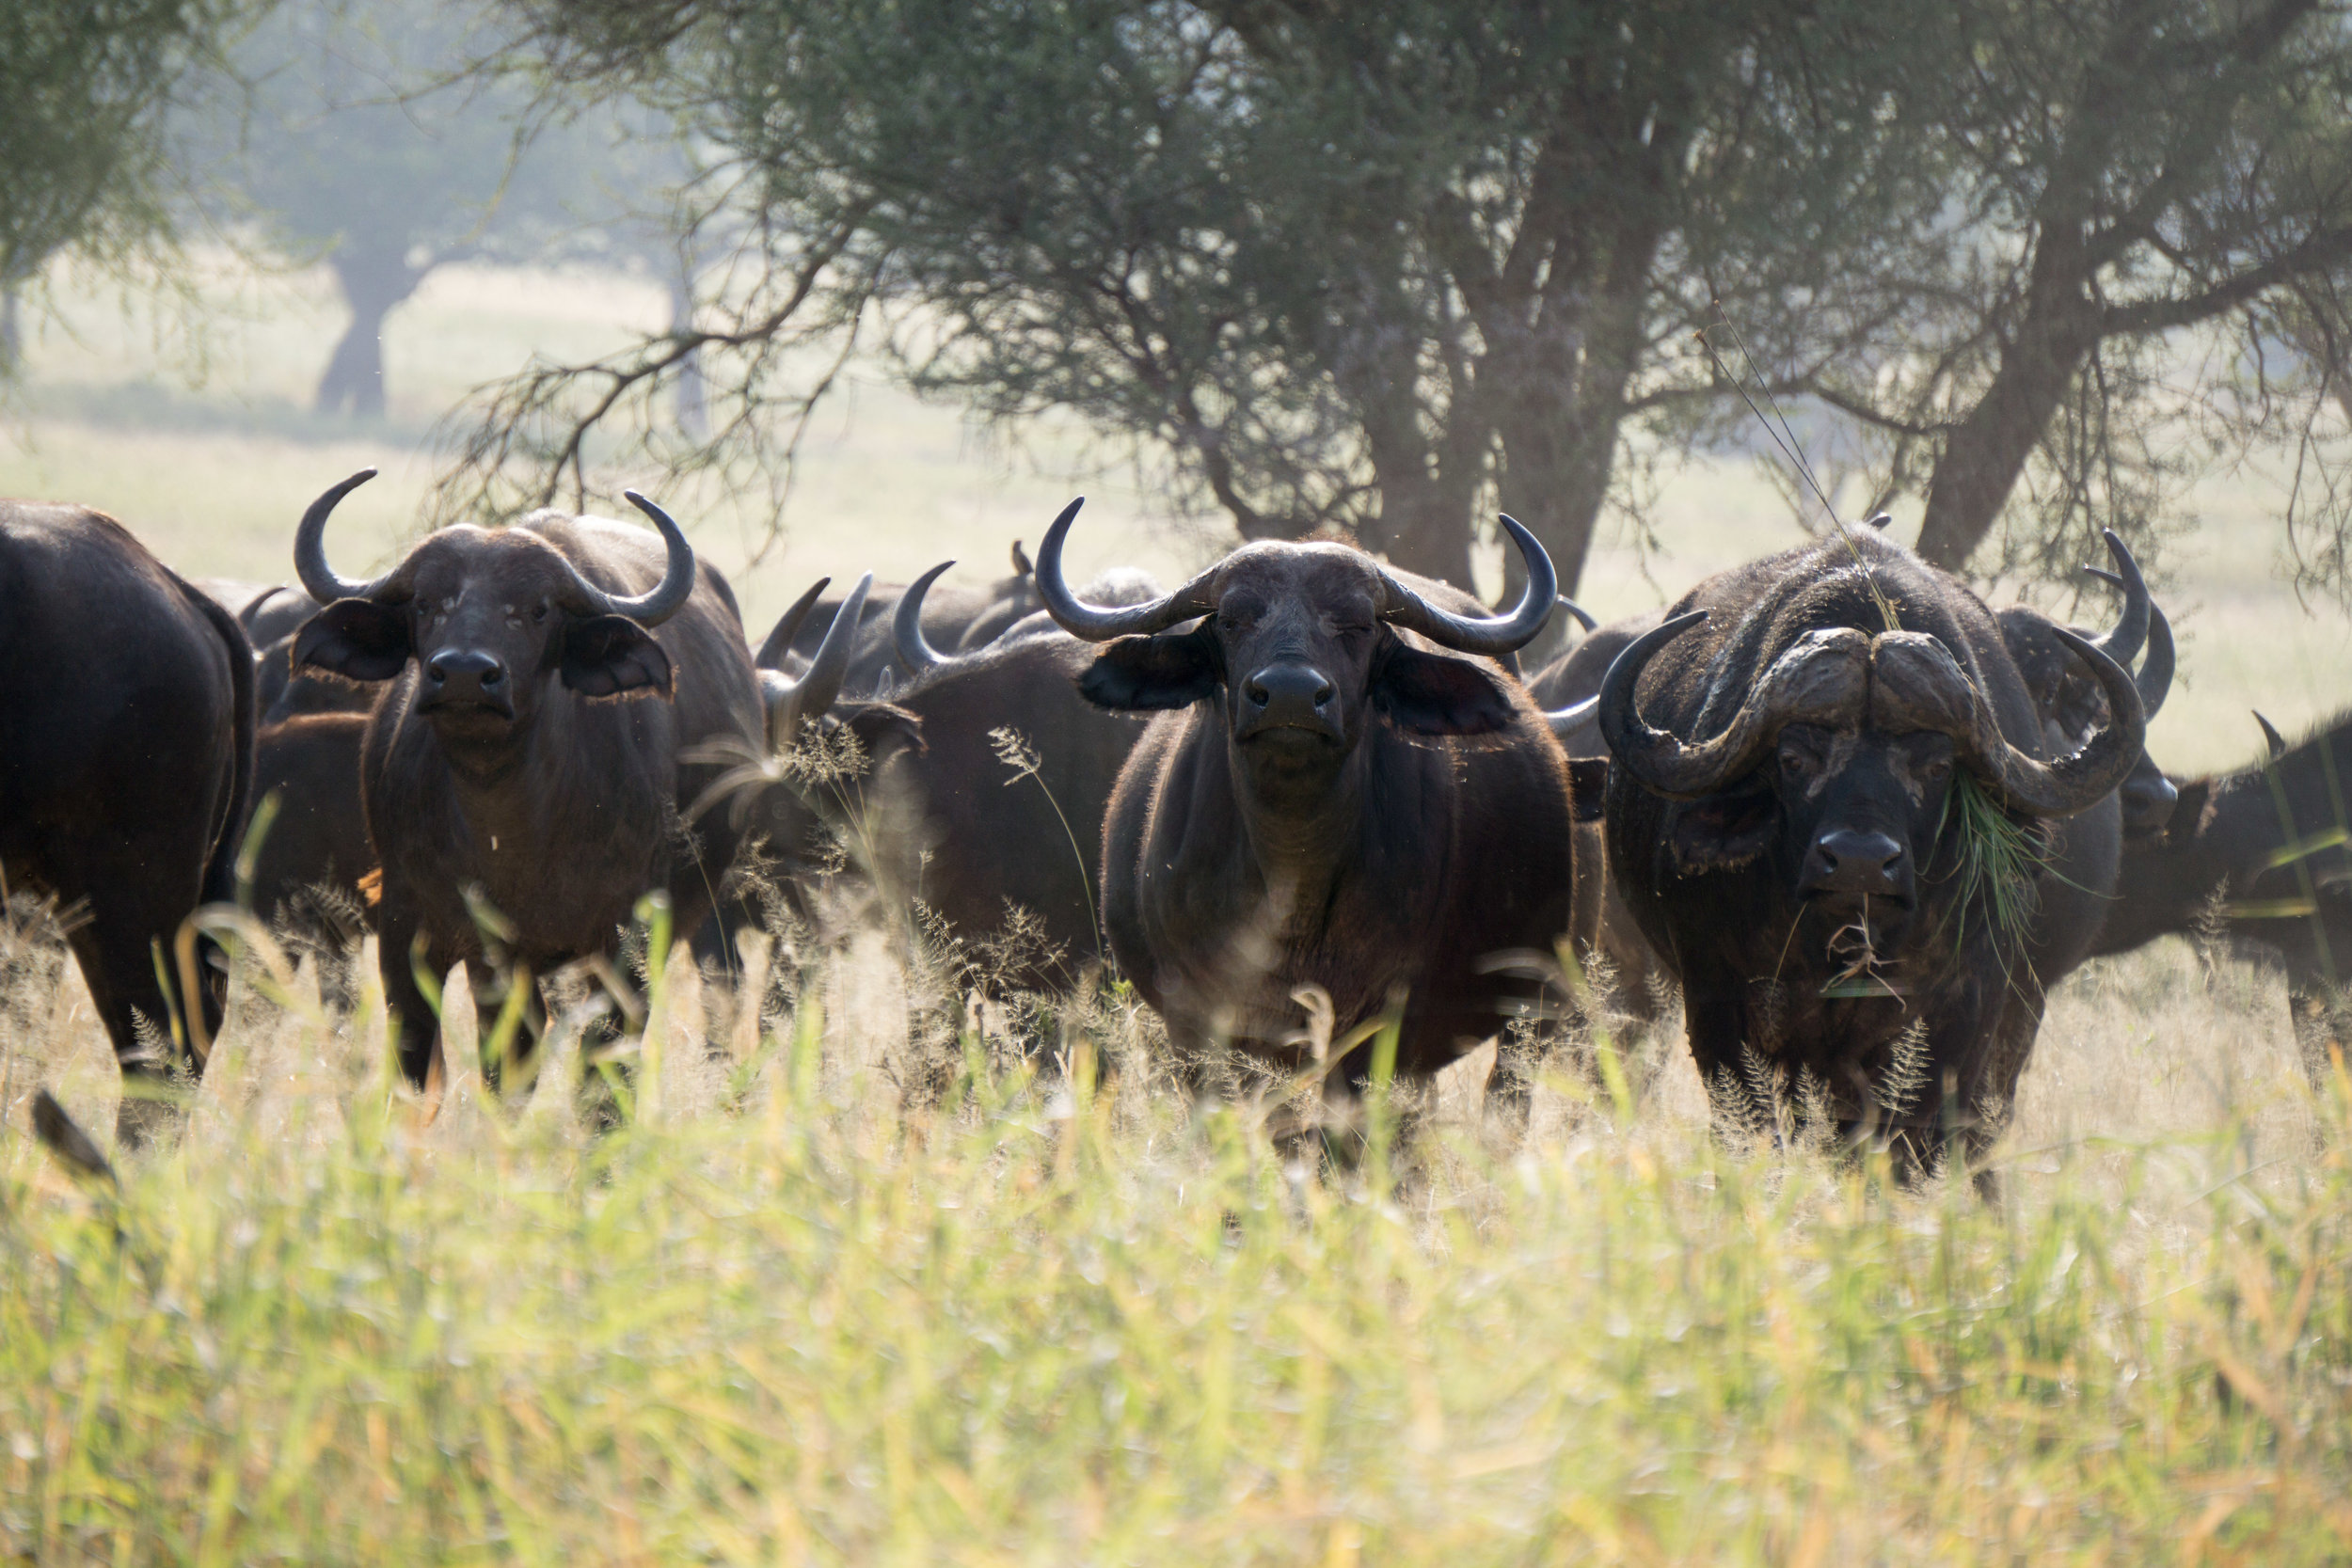 Water buffaloes giving us the stare down.